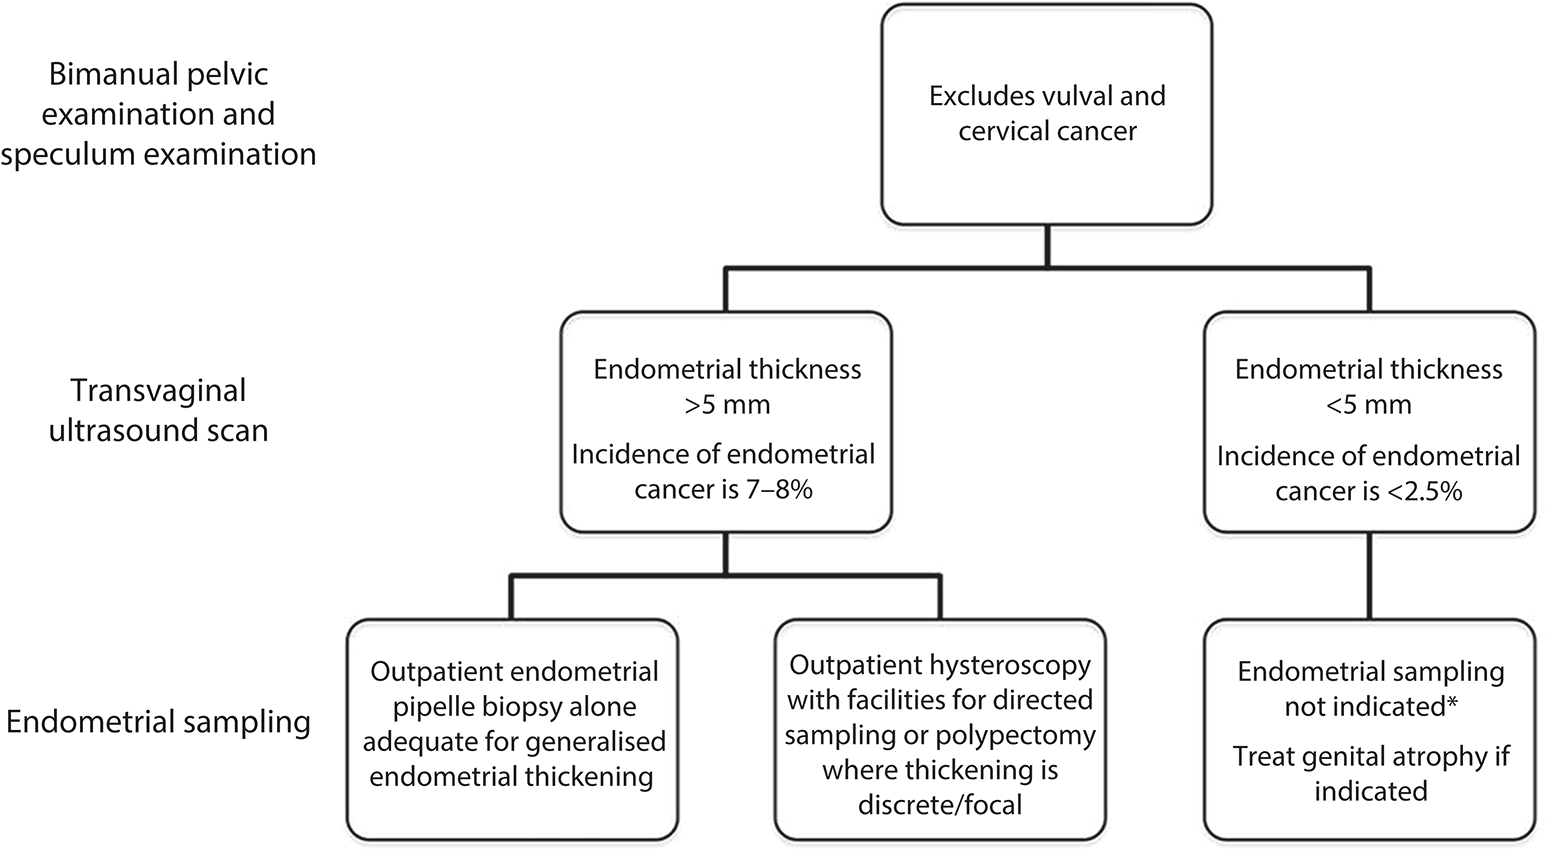 endometrial cancer nice guidelines